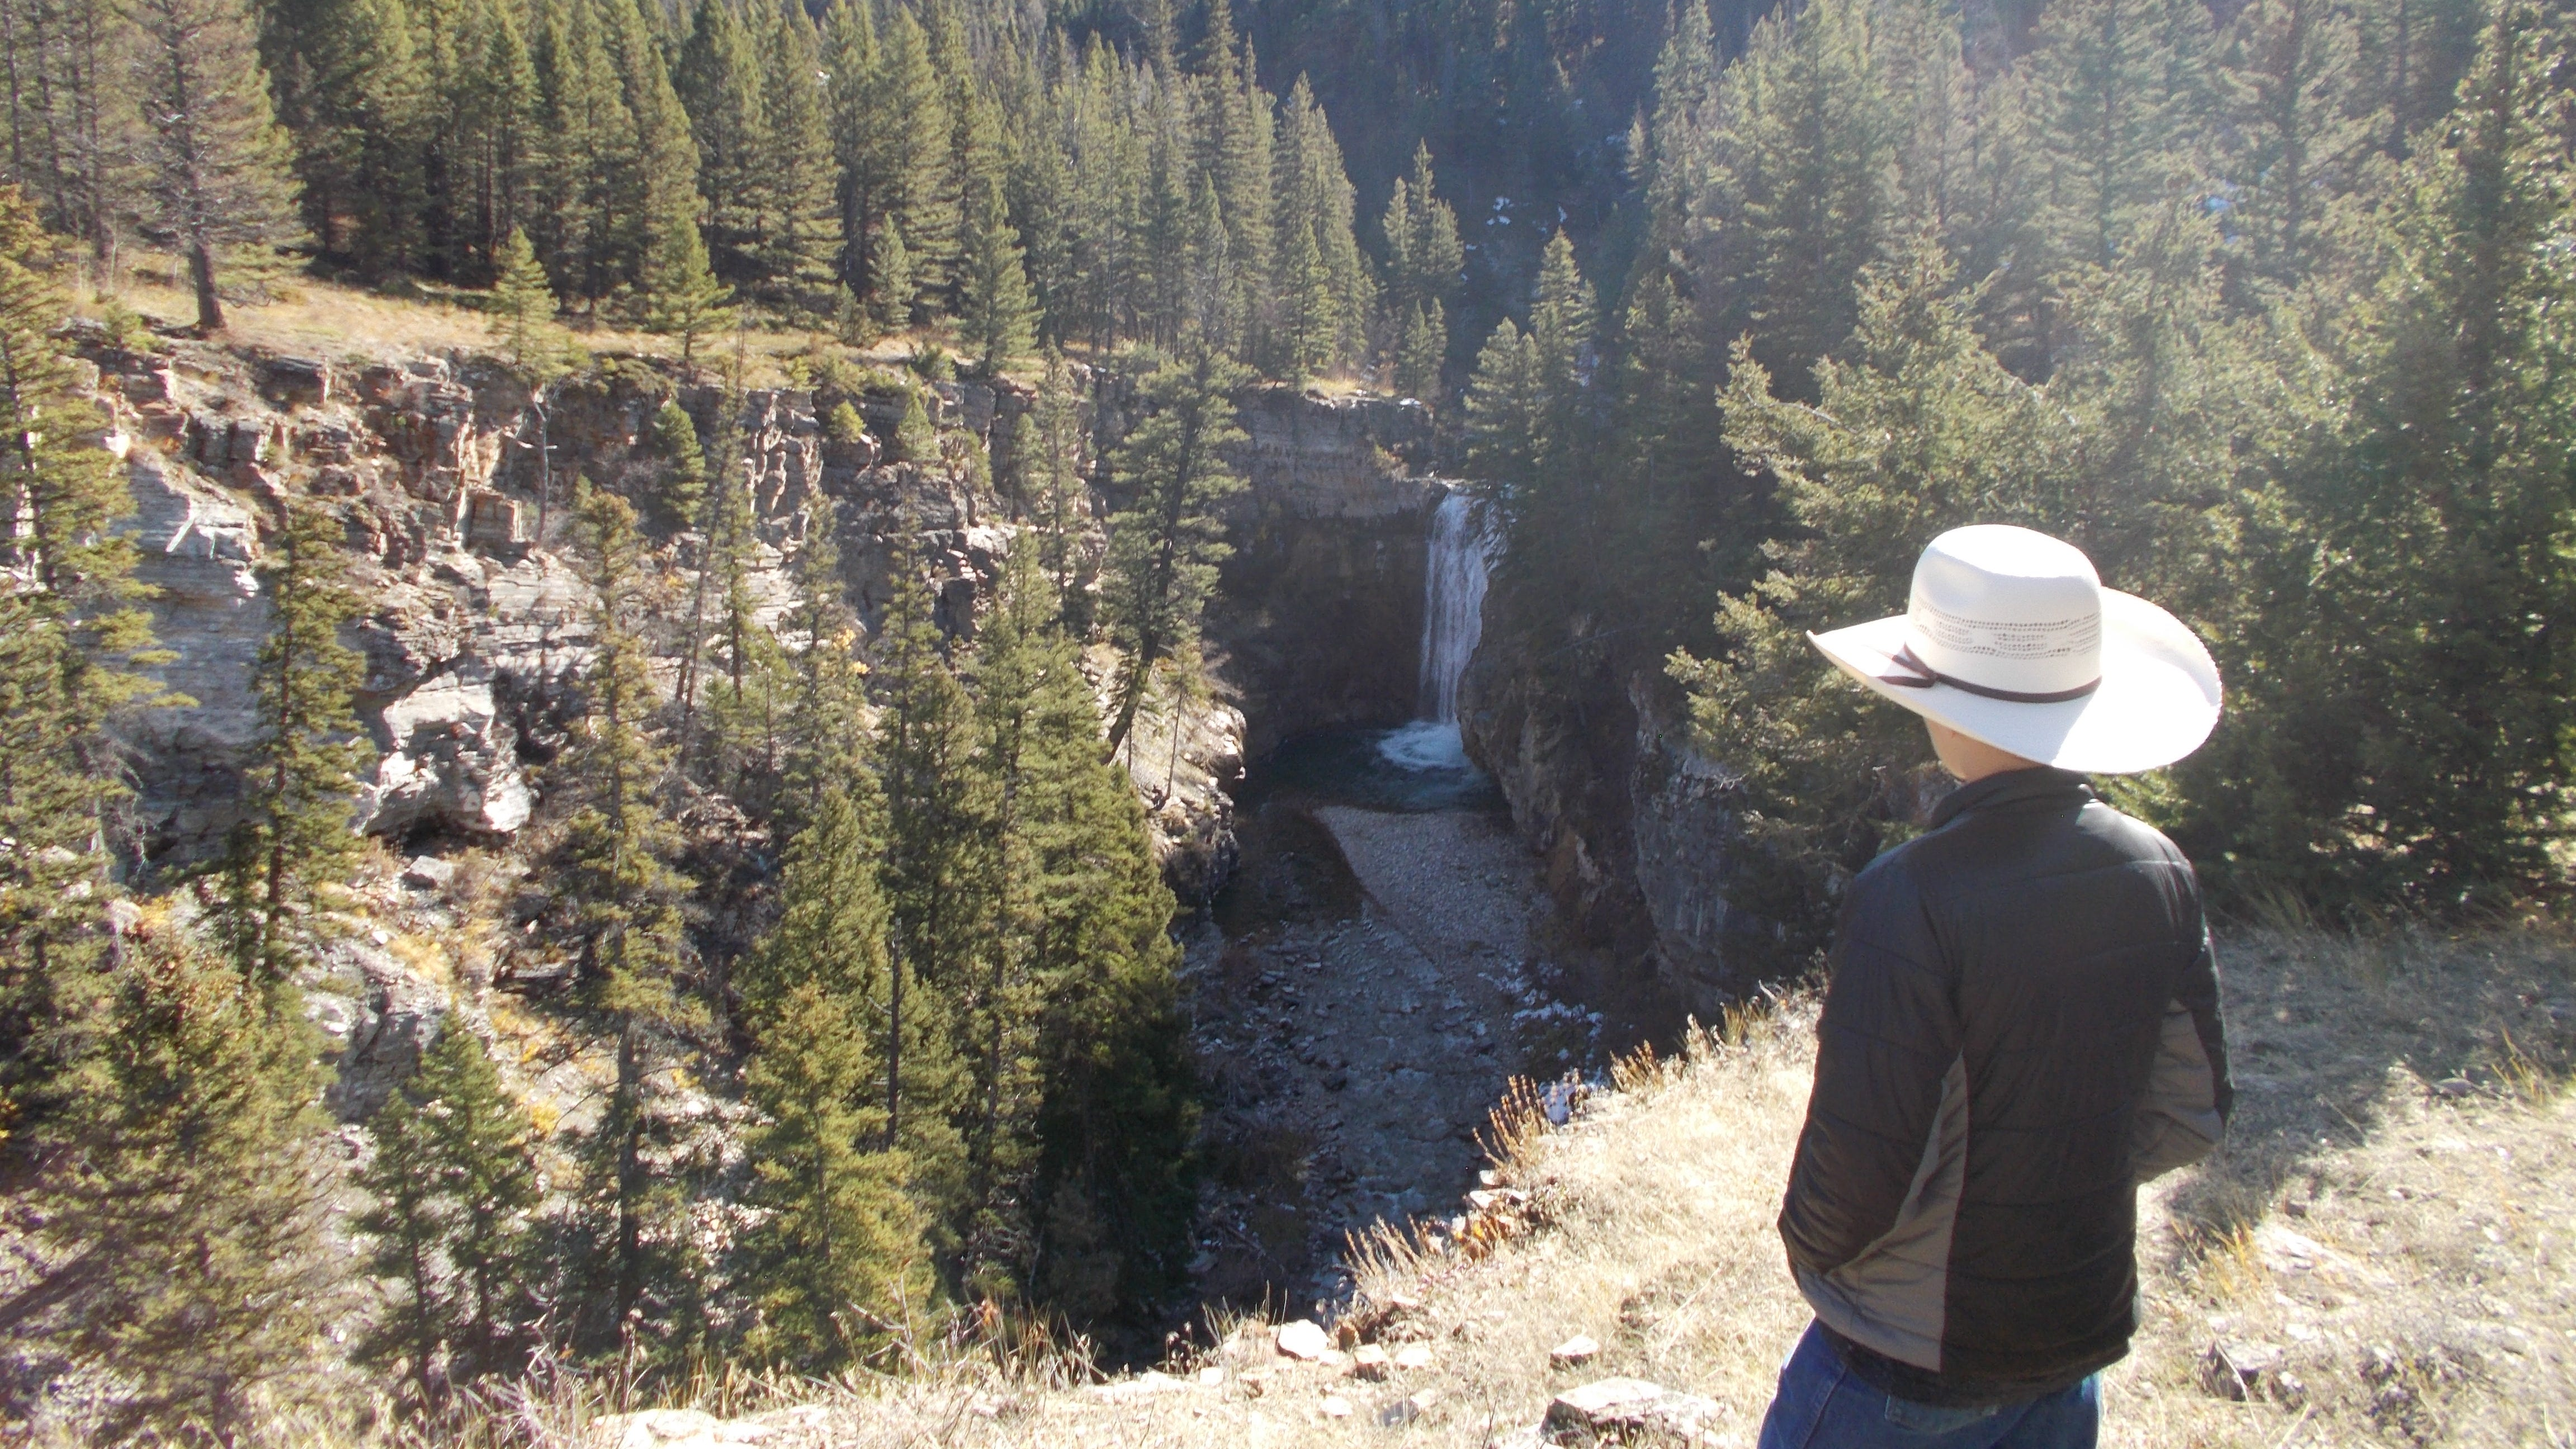 """Wyatt Barrett checks out a waterfall on Falls Creek west of Augusta. This location will become public under a land sale his father, Dan, is working on with the Rocky Mountain Elk Foundation. The purchase of 422 acres will open 26,000 additional acres of public land that's """"incredible elk country."""""""